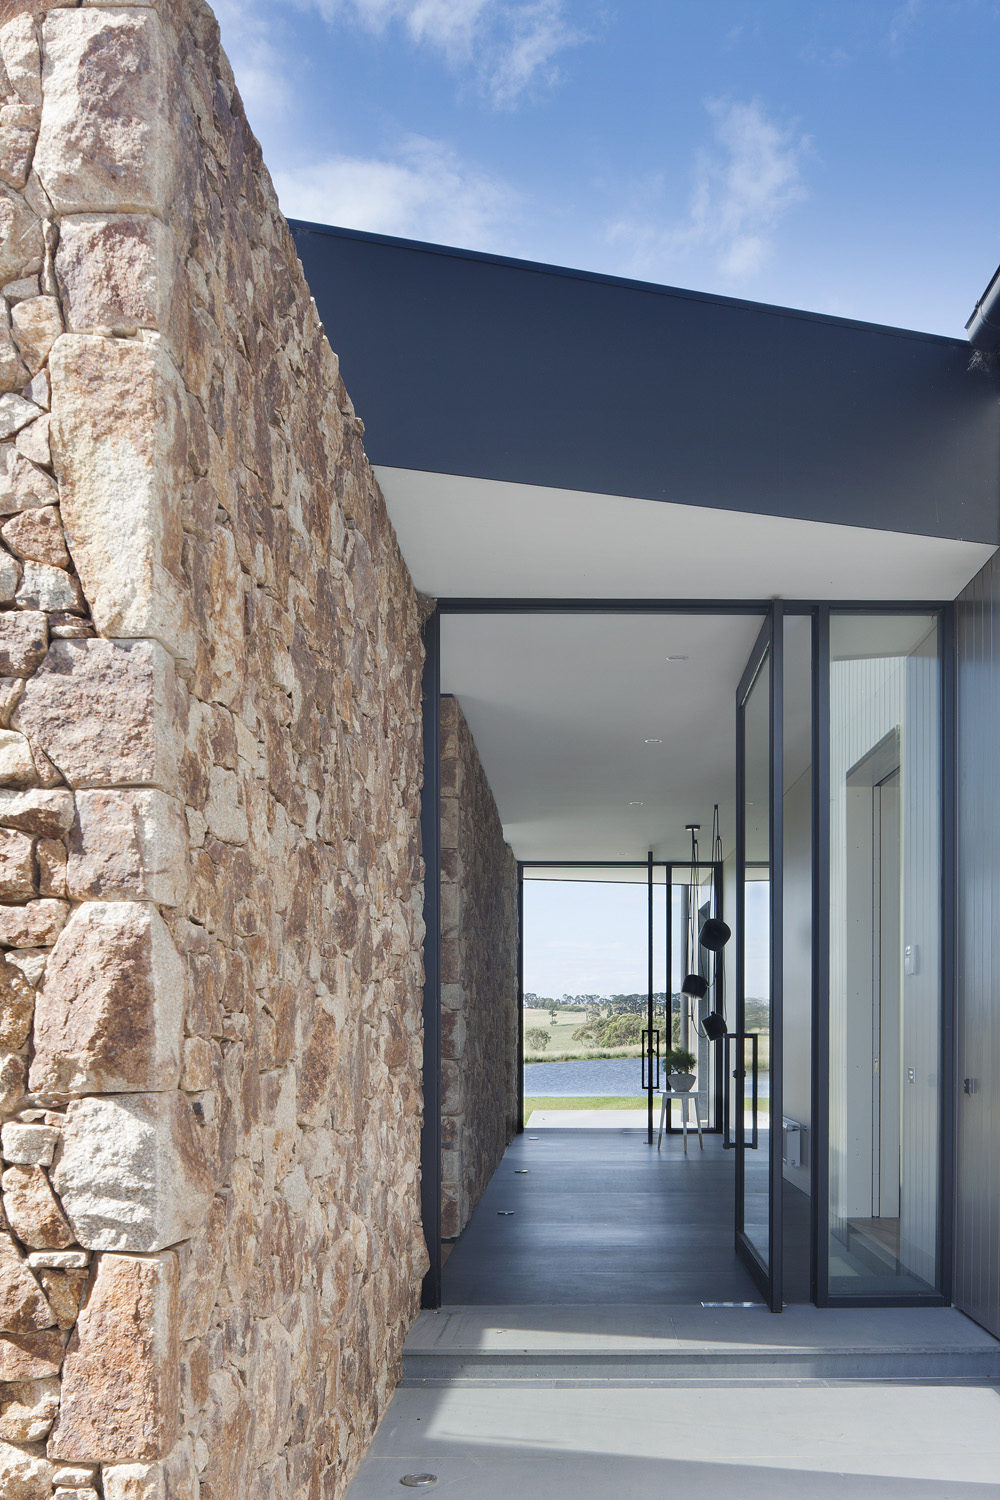 A natural stone wall adds a rustic element to the home's interior and exterior